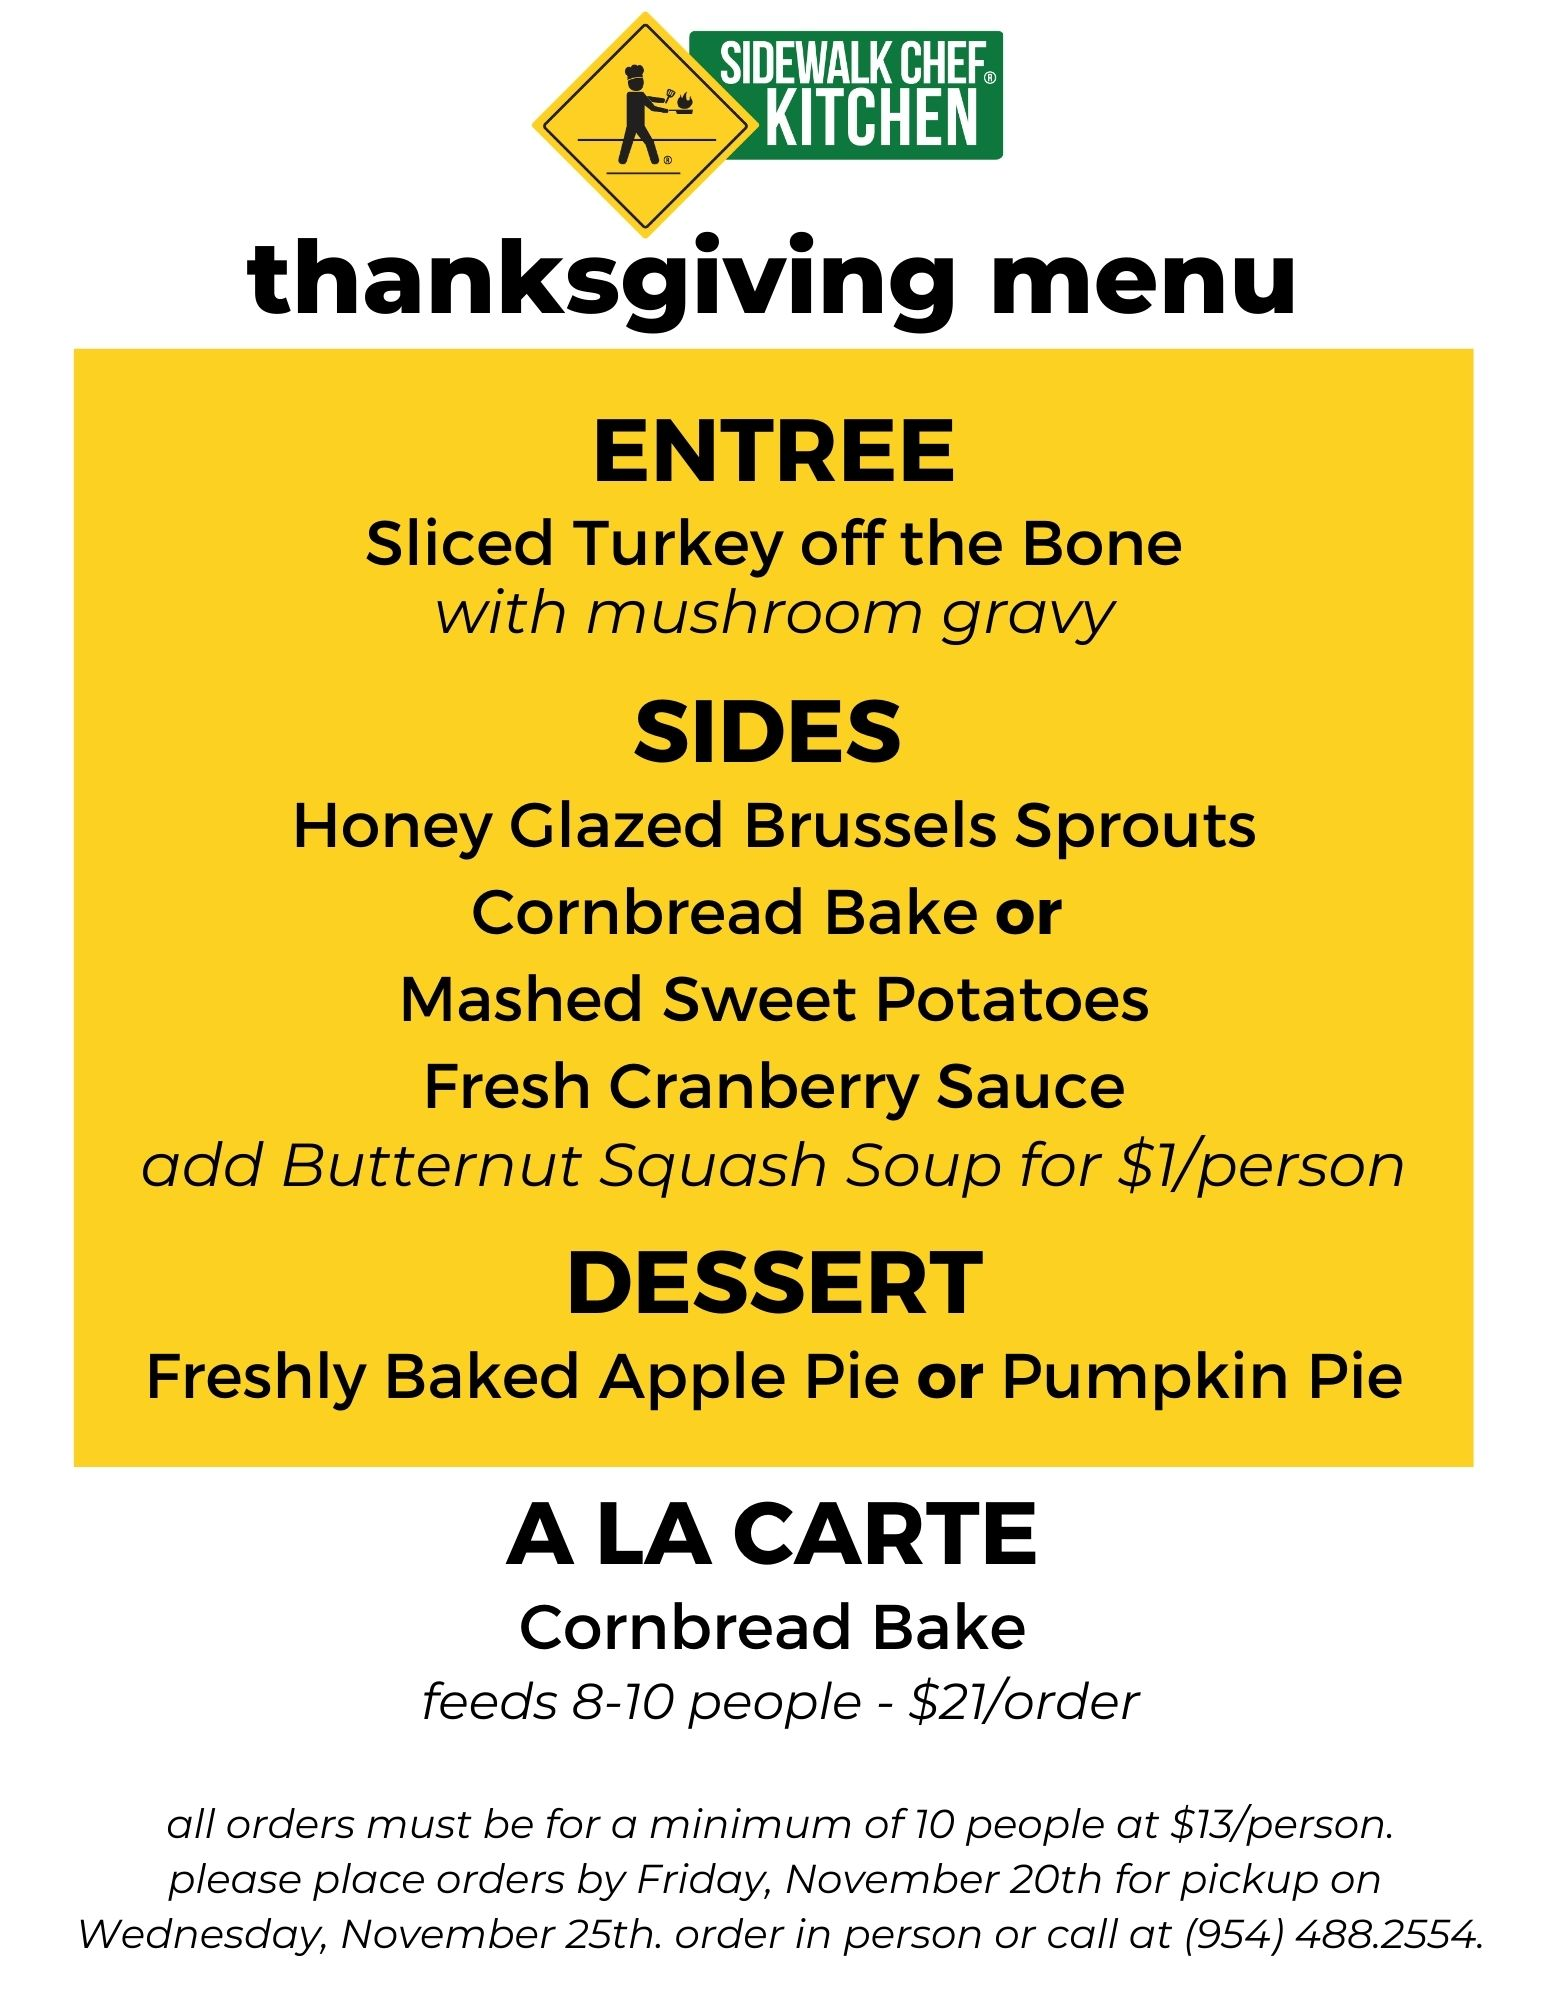 Thanksgiving Catering at Sidewalk Chef Kitchen